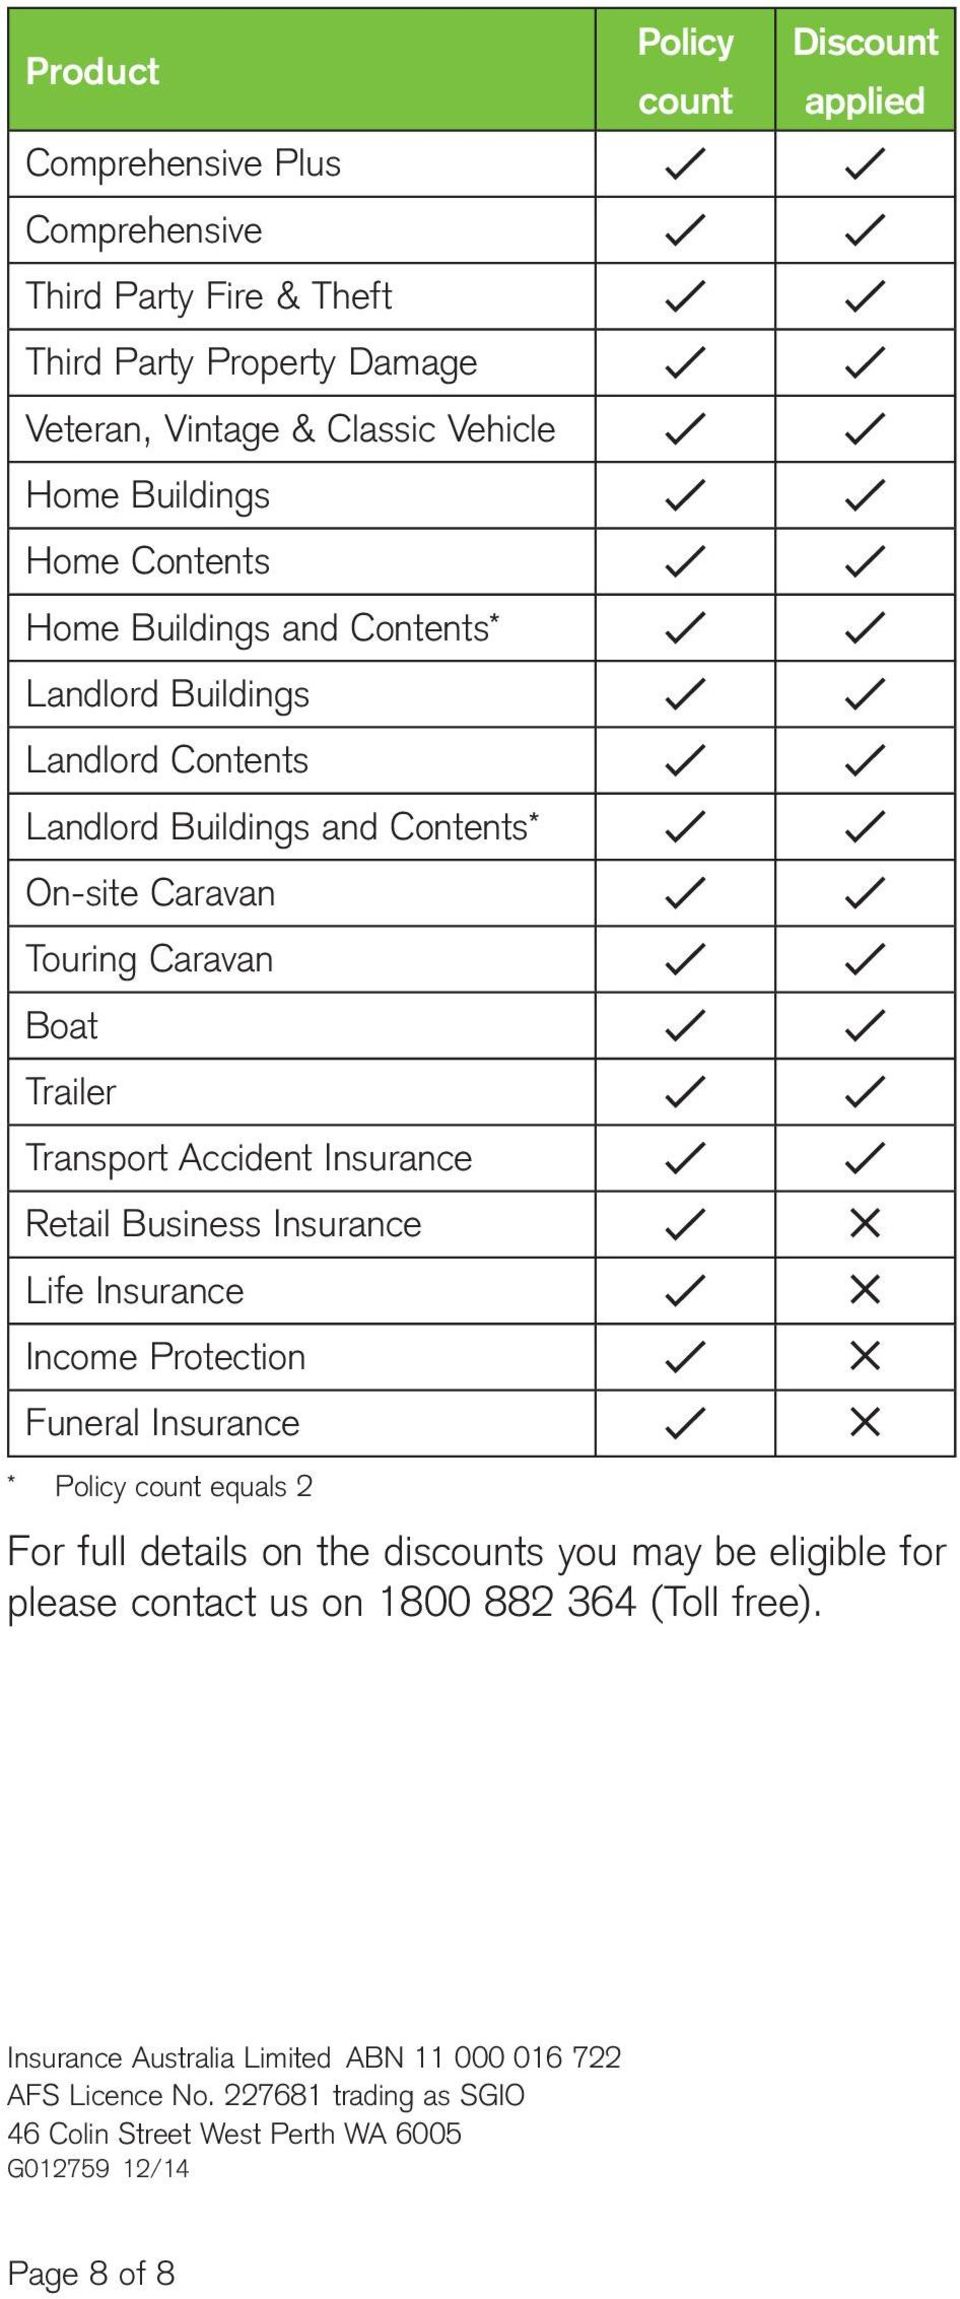 Insurance Life Insurance Income Protection Funeral Insurance * Policy count equals 2 Policy count Discount applied For full details on the discounts you may be eligible for